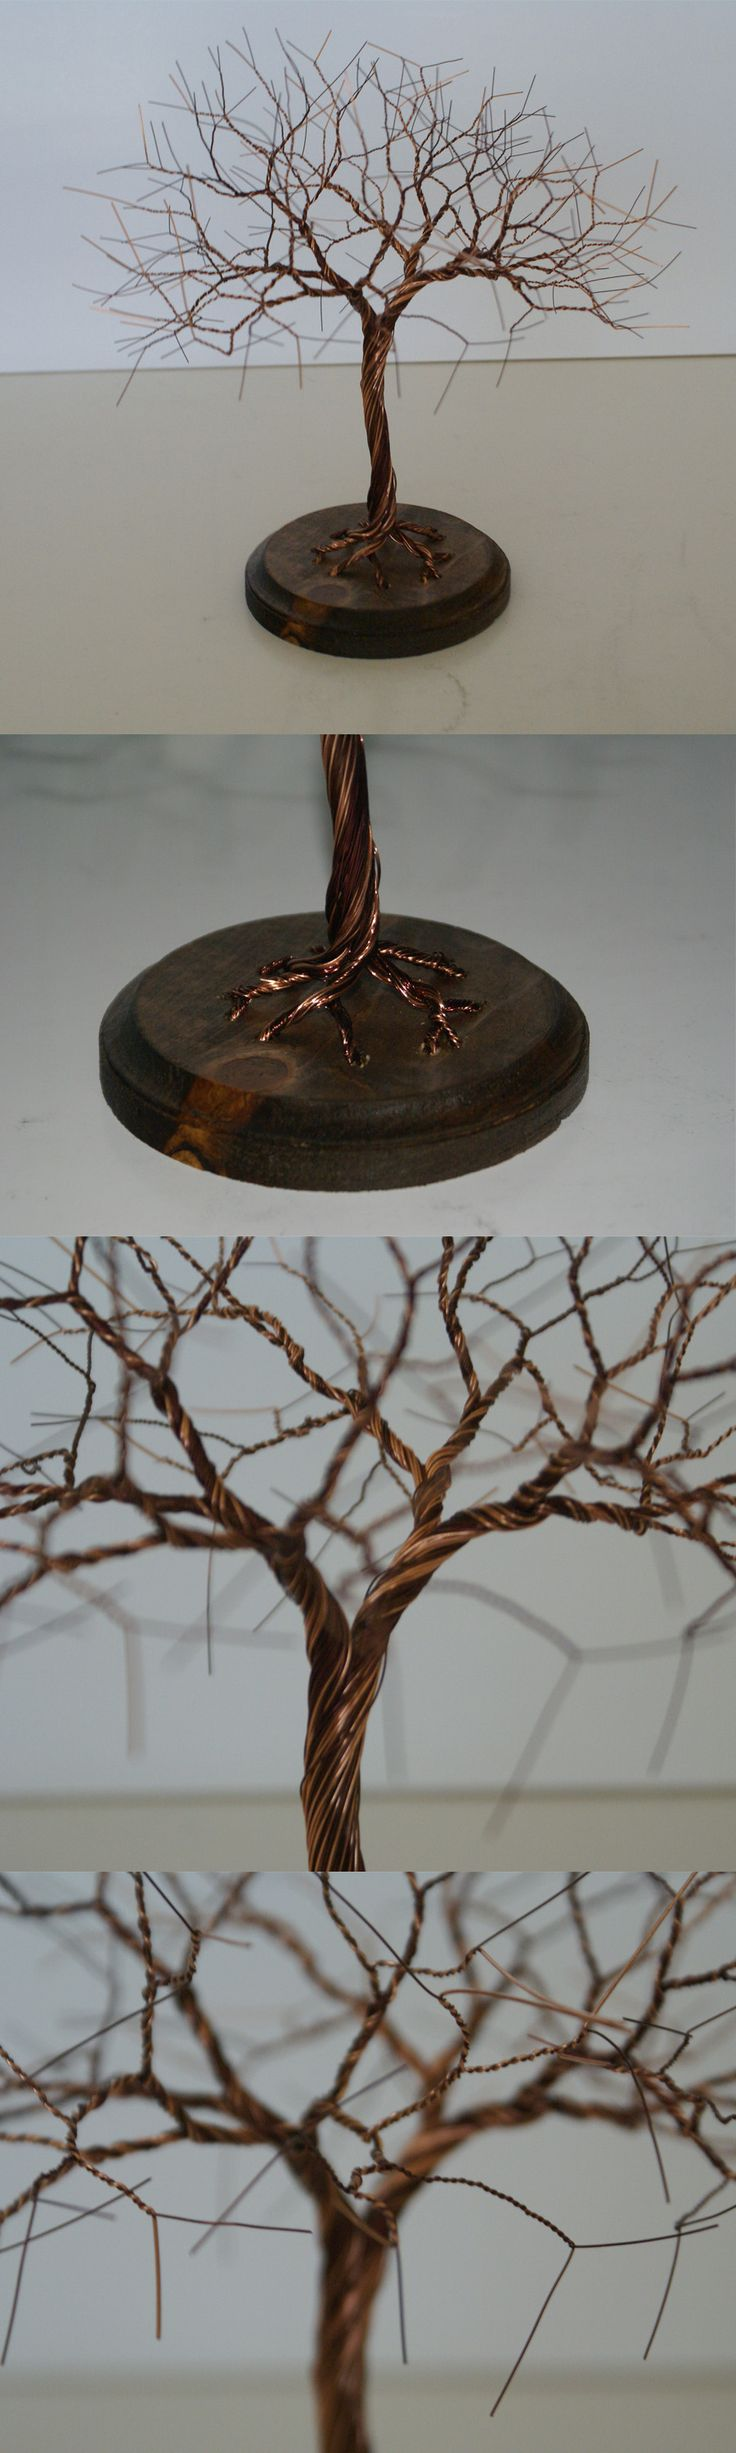 344 best wire trees images on Pinterest | Wire sculptures, Sculpture ...